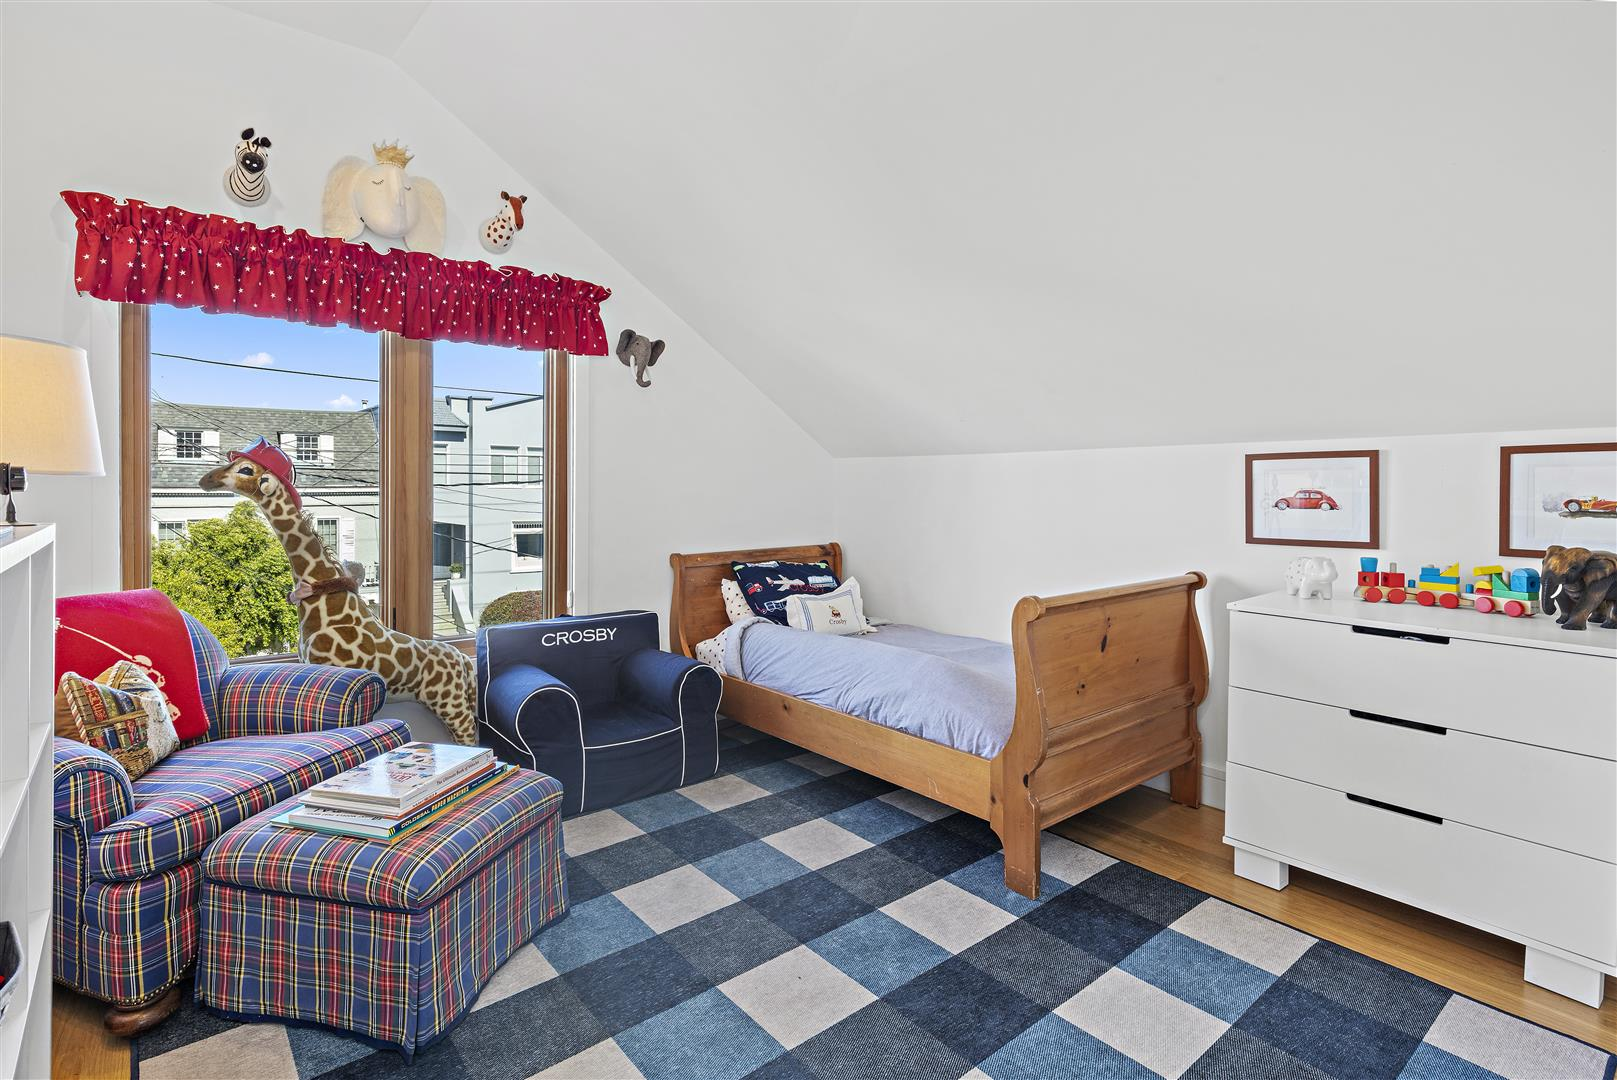 25a-MLS-375-30th-Ave-San-Francisco56.jpg #26